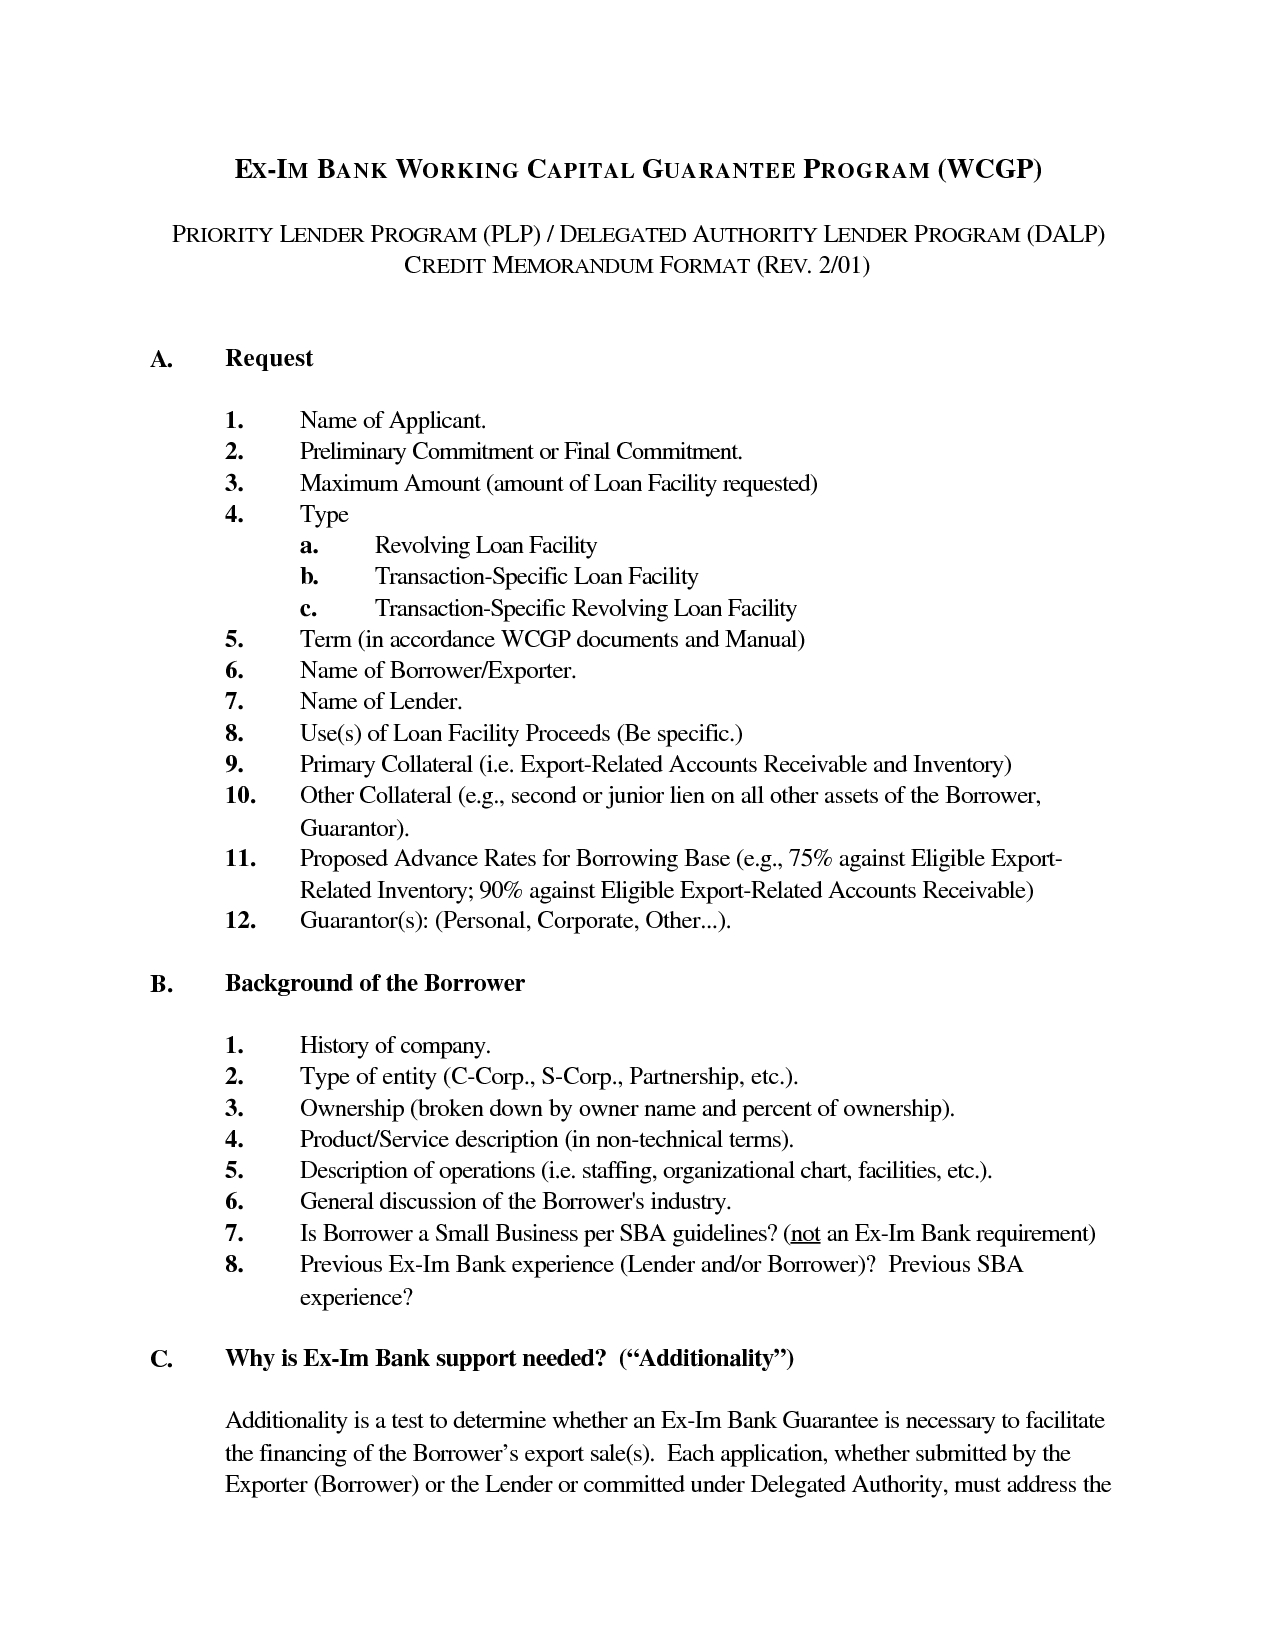 Memo Outline Format - Asafon.ggec.co in Legal Memo Format Example 23095